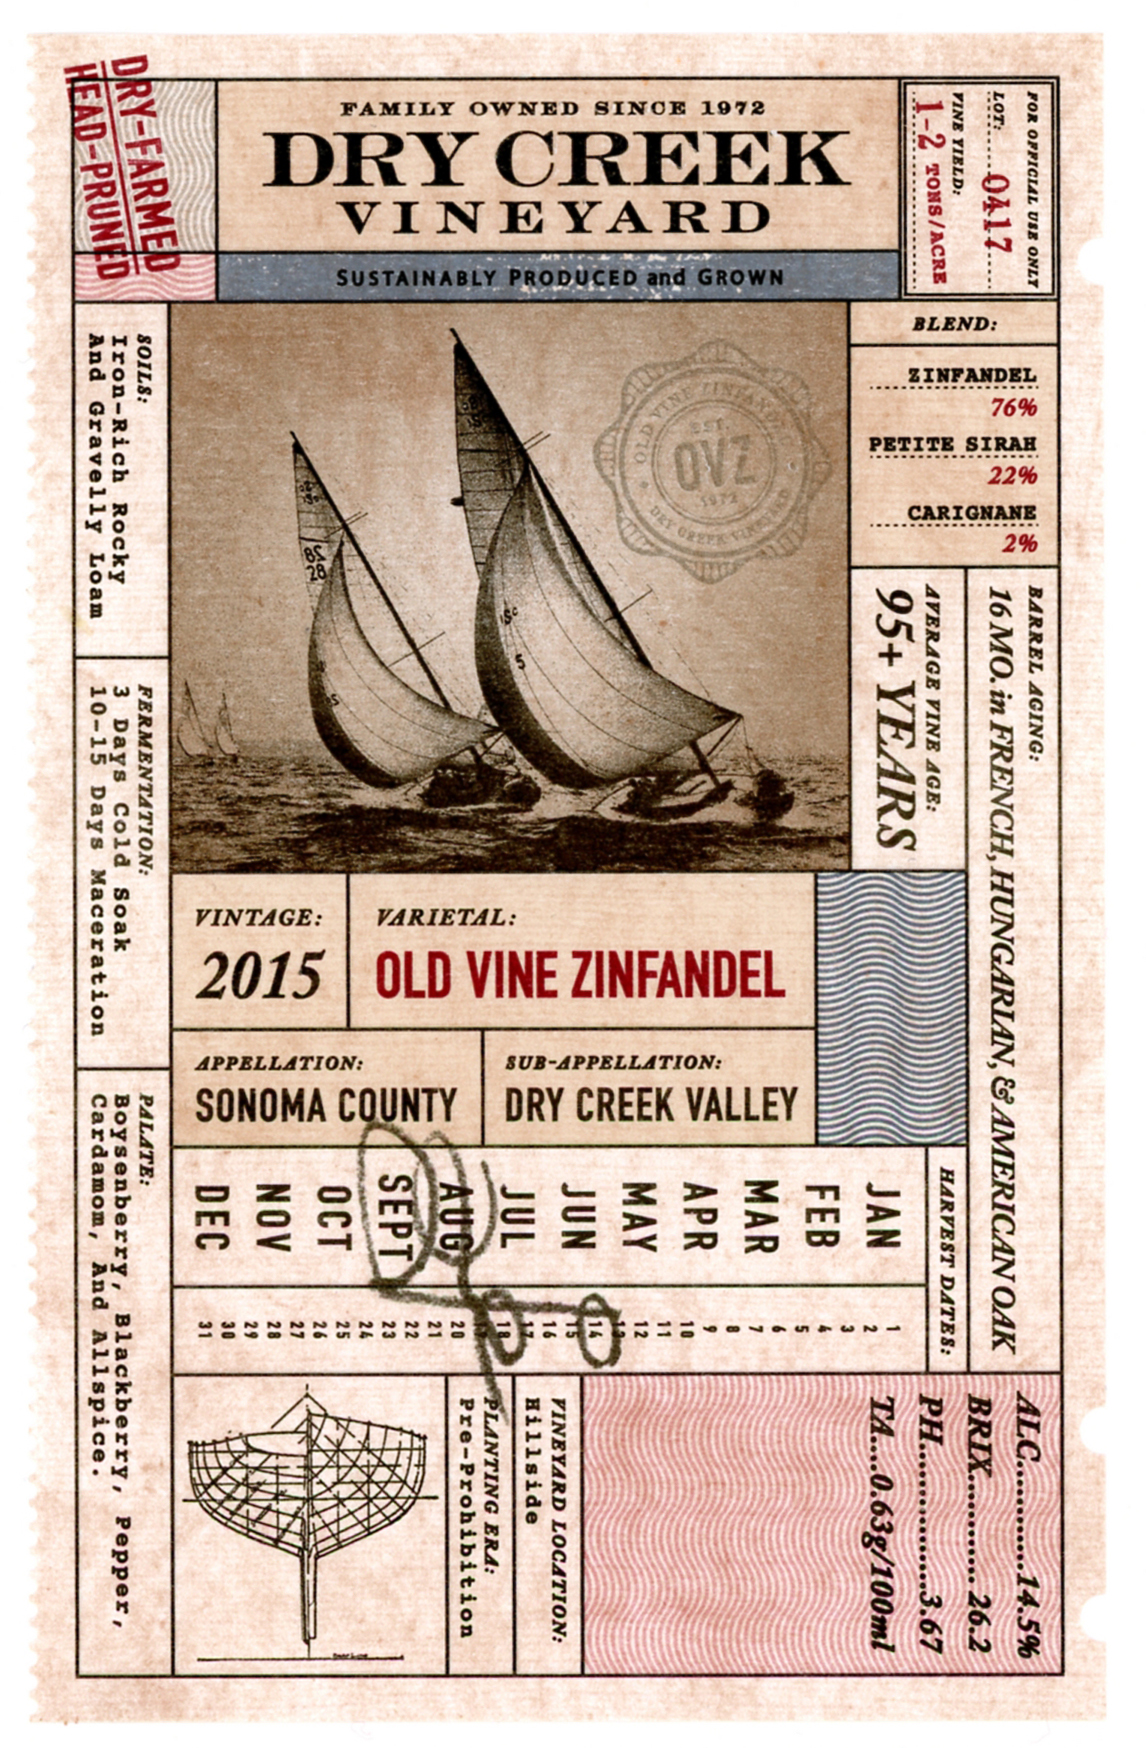 2015 Dry Creek Vineyard Zinfandel Old Vine